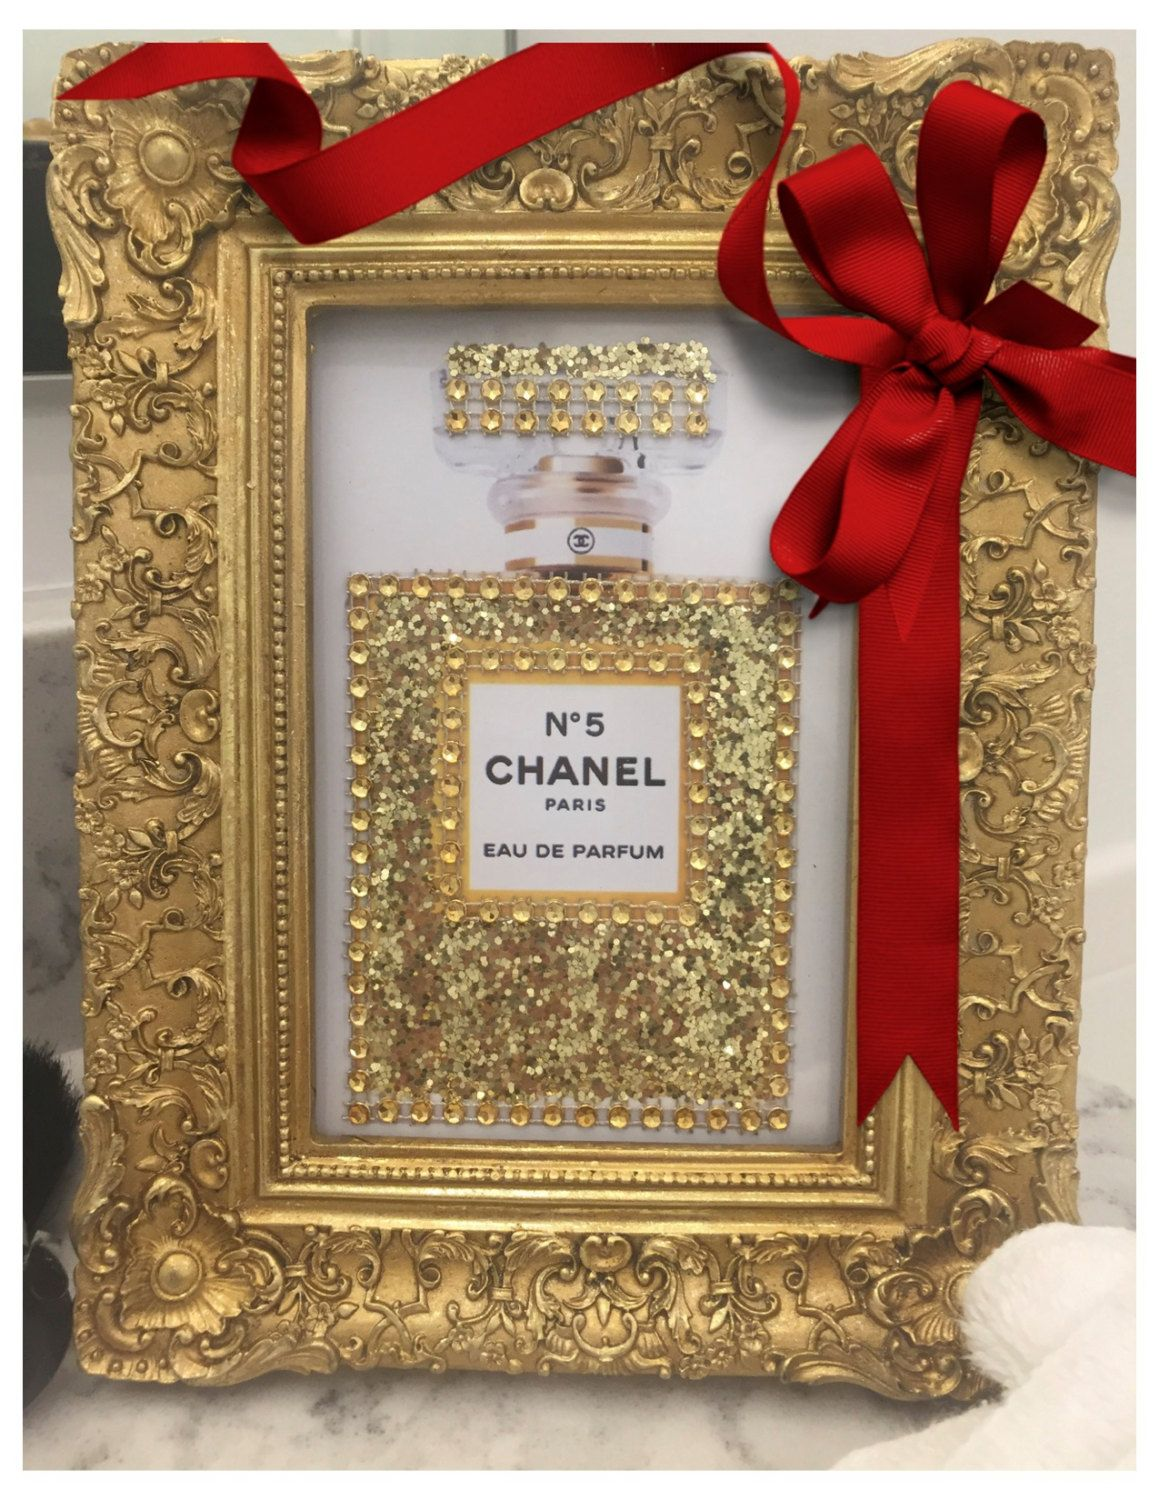 Ornate Gold Framed Chanel No. 5 Glitter and Crystals 4 x 6 Vanity ...